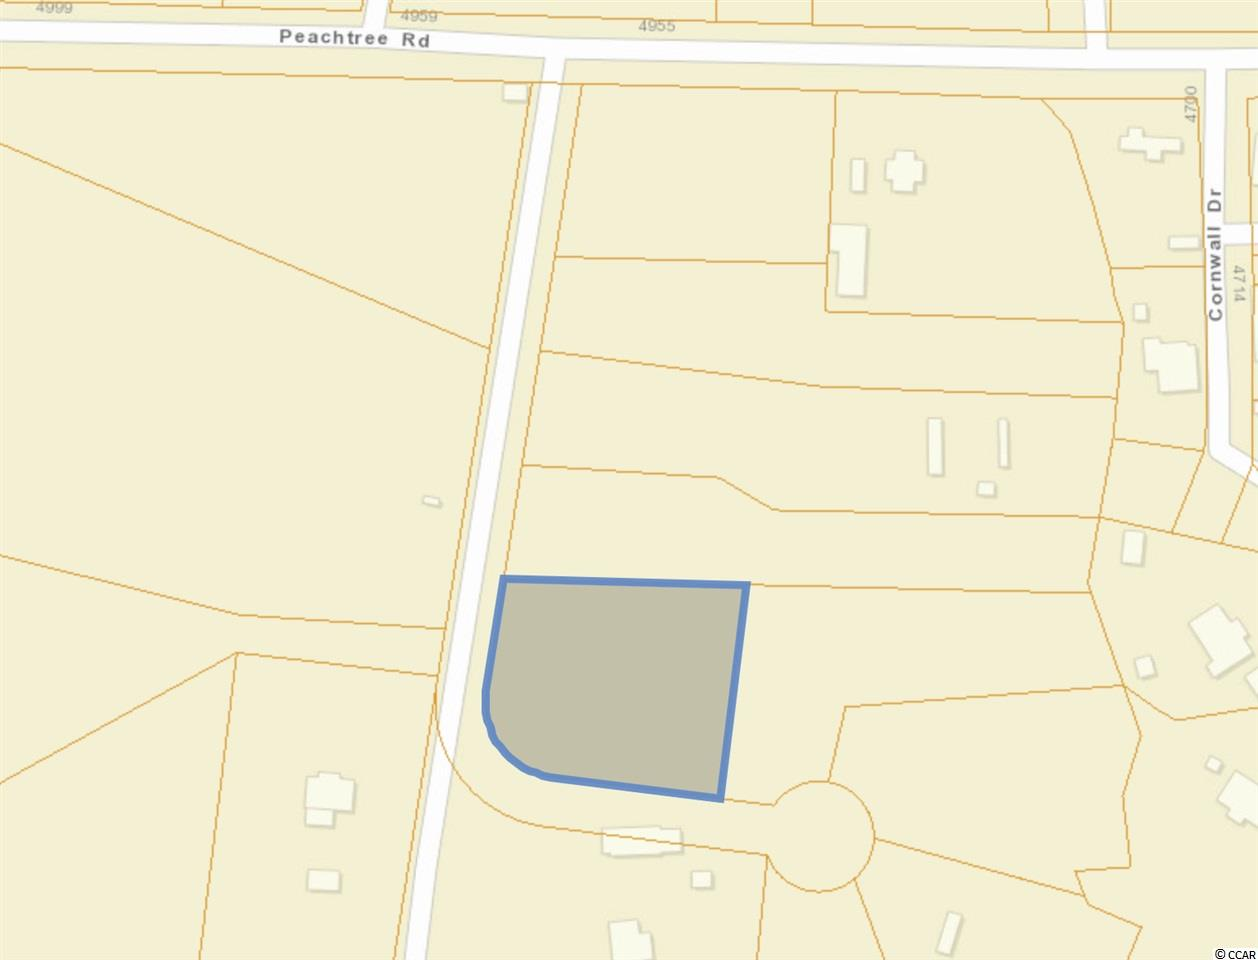 Lots available now to build your dream home! These lots range from 1-2 acres. Some are channel front, leading to the ICW. This is a one of a kind community, just miles from the ocean, centrally located in Myrtle Beach. Come bring your builder or choose ours, and enjoy this low country, private lifestyle that Peachtree Estates has to offer! Schedule your showing now.